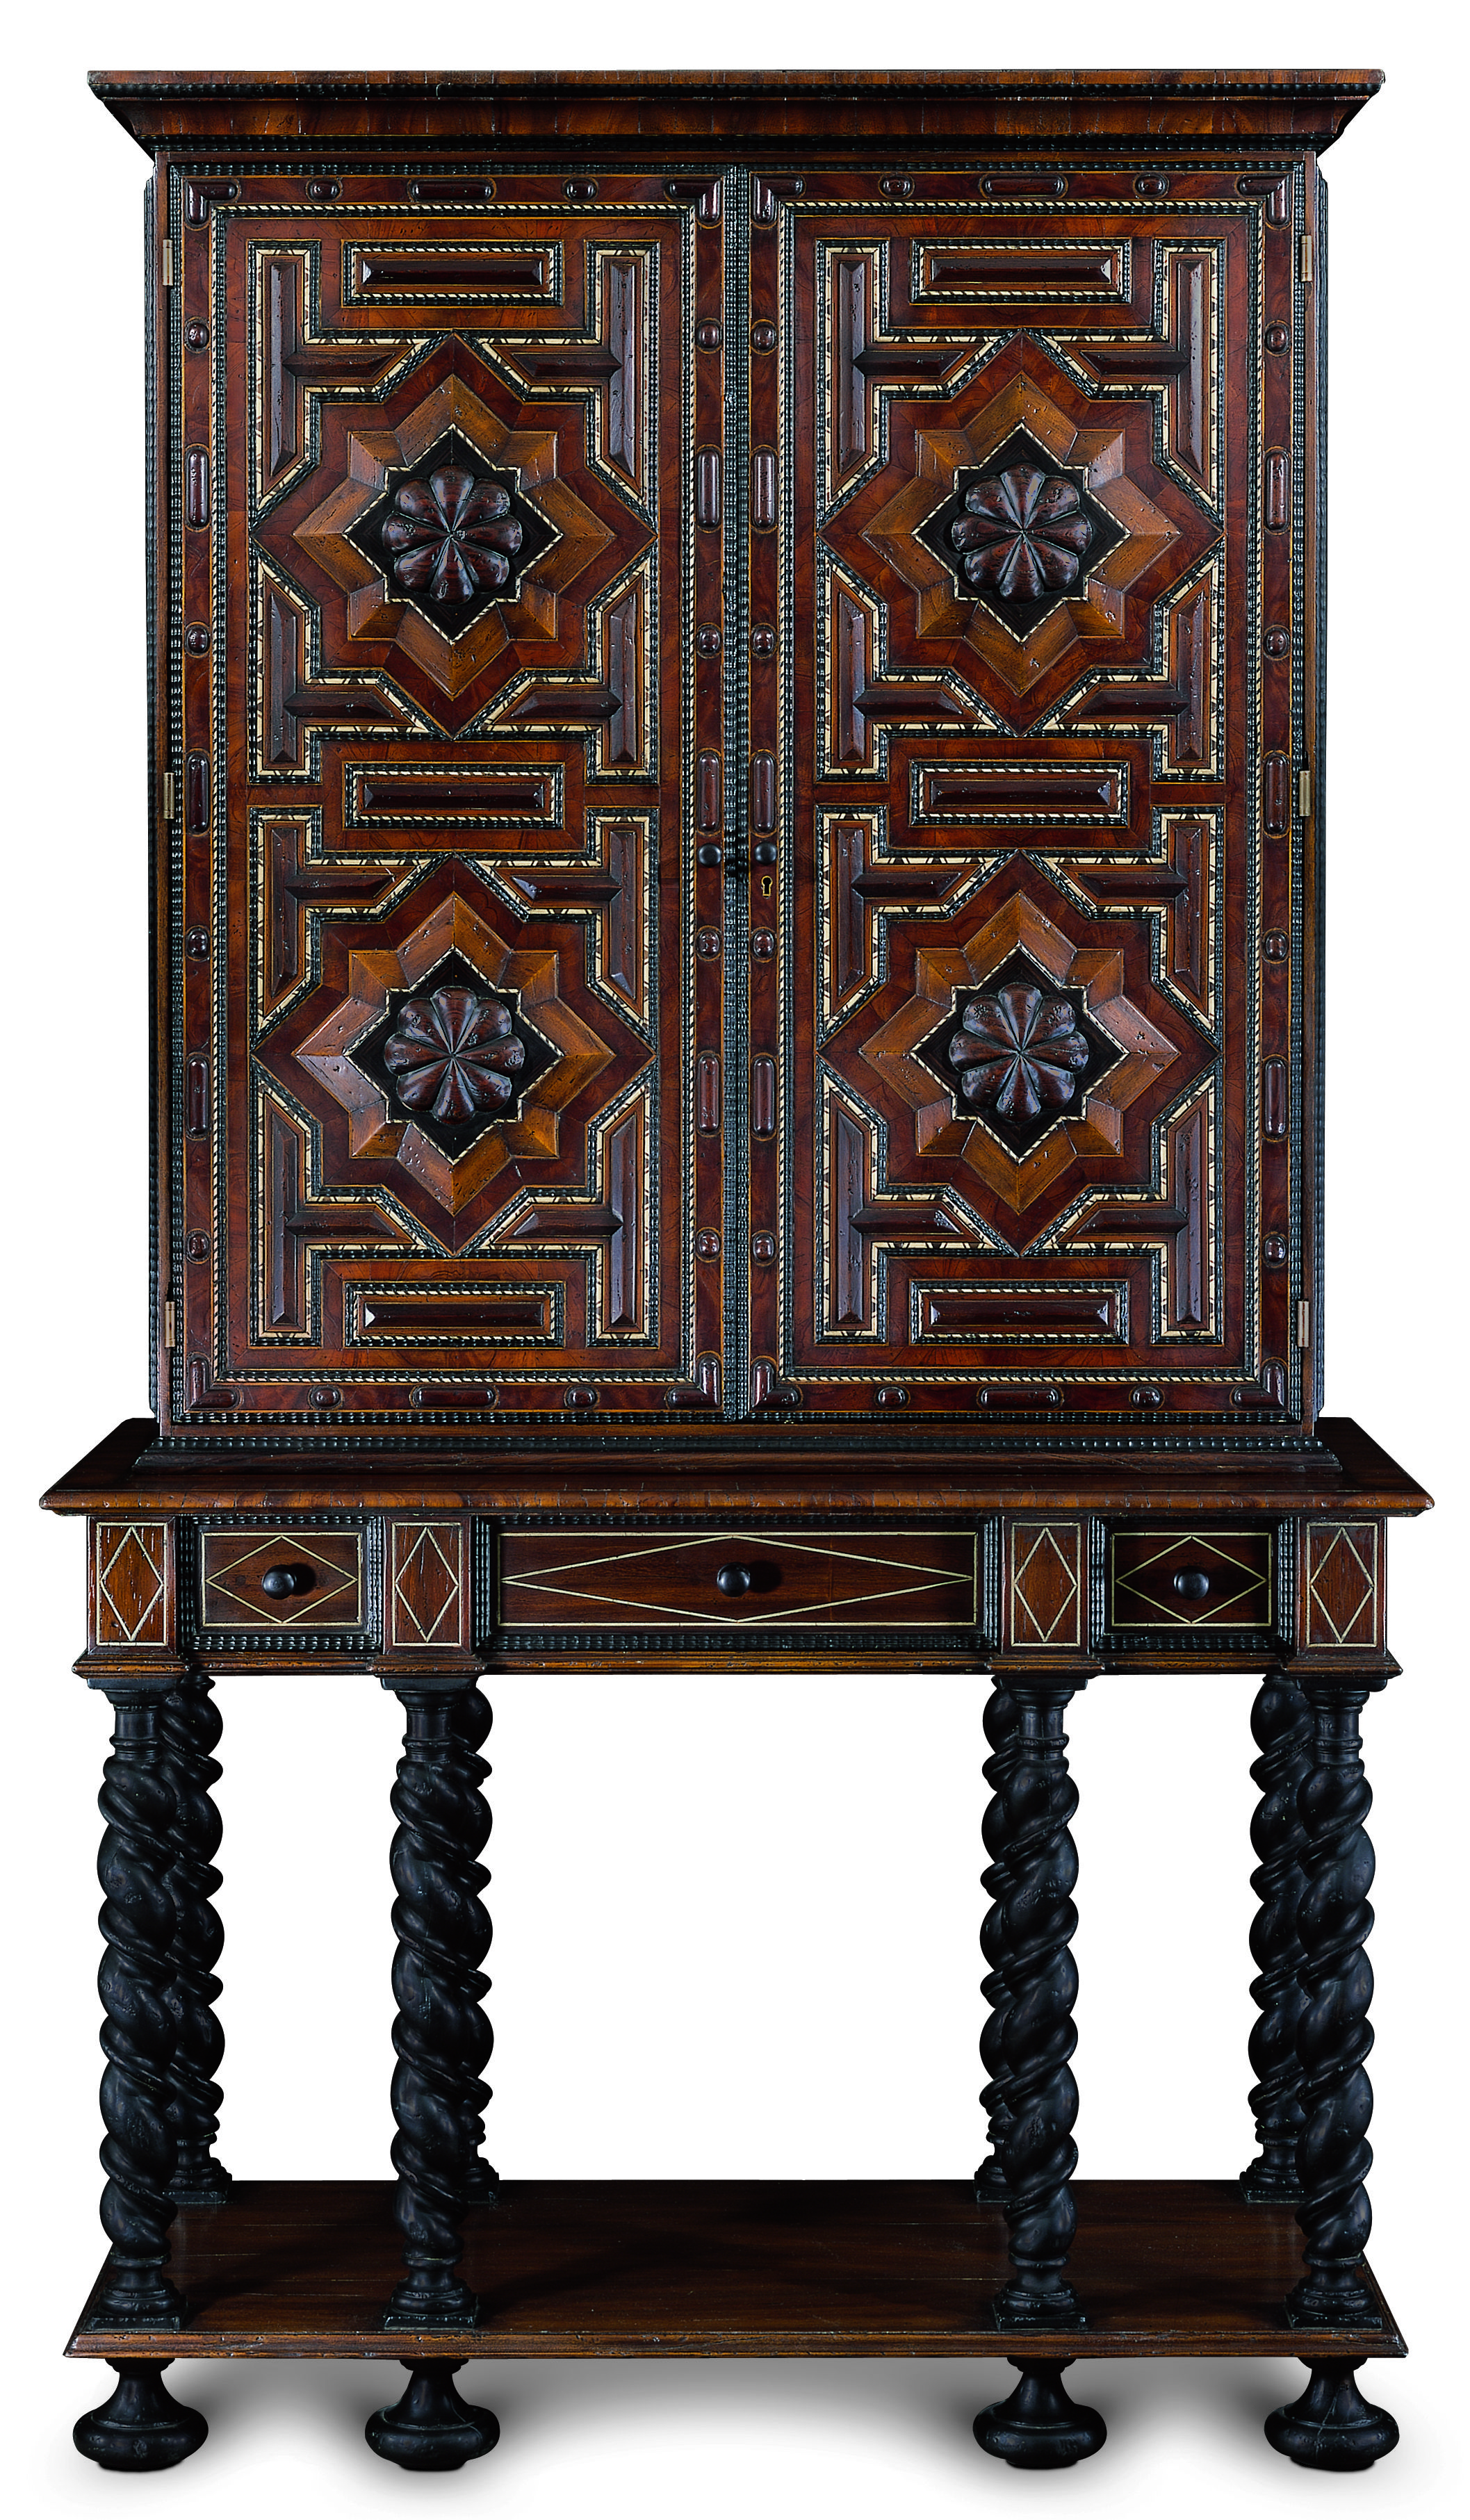 Andaluz armoire by alfonso marina ebanista eclectic home for Alfonso marina ebanista furniture